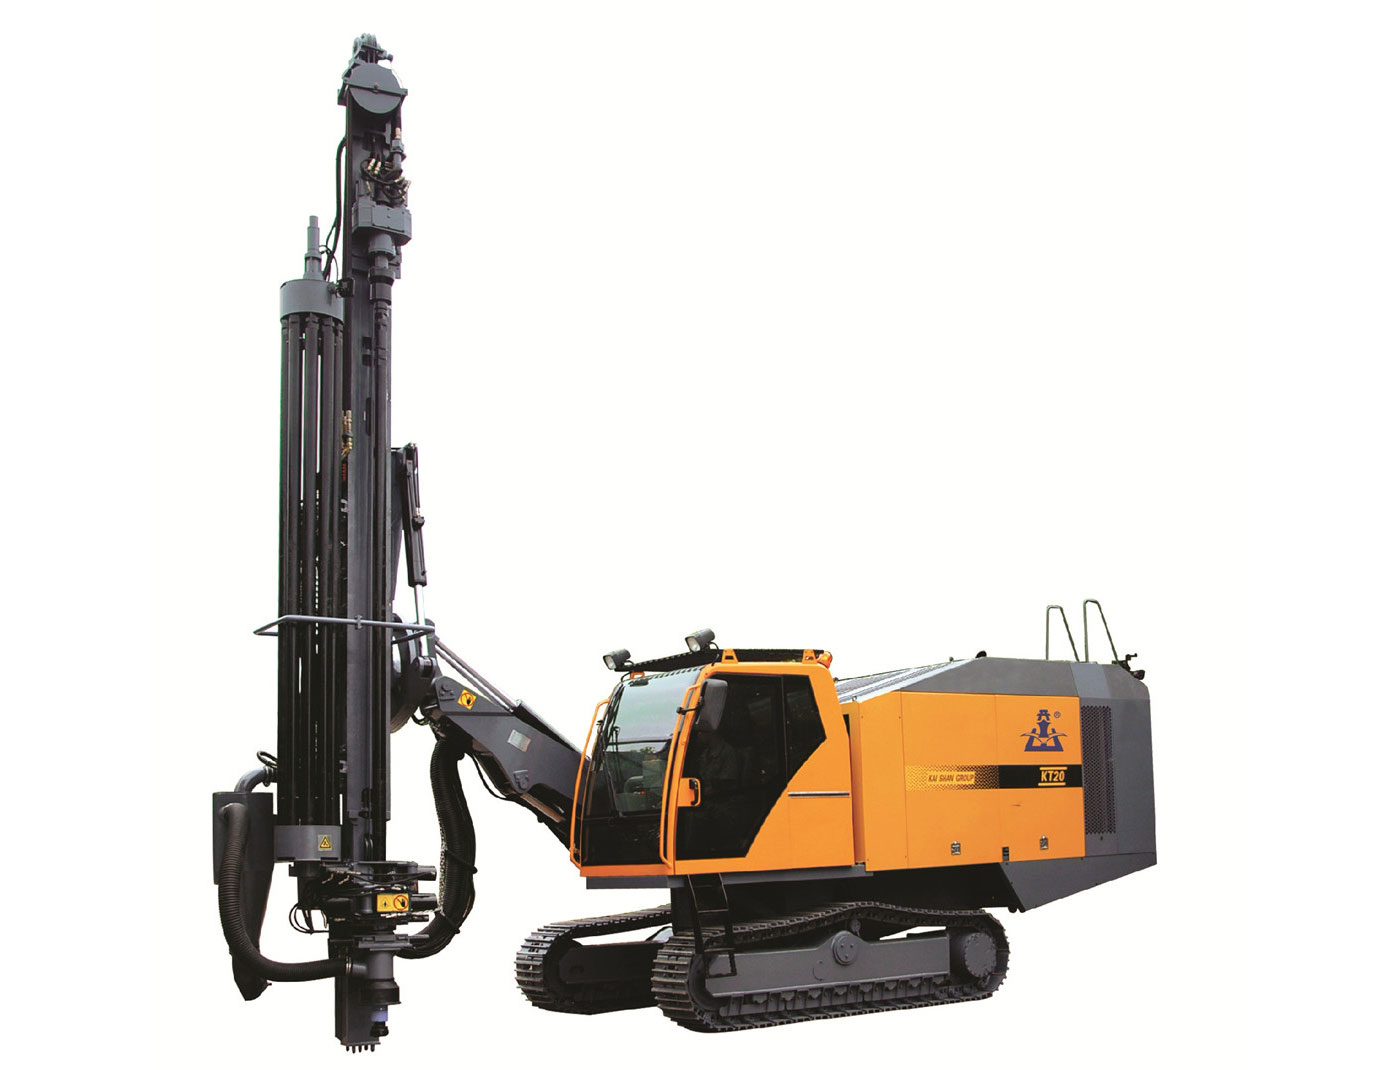 KAISHAN KT20 integrated drilling rig